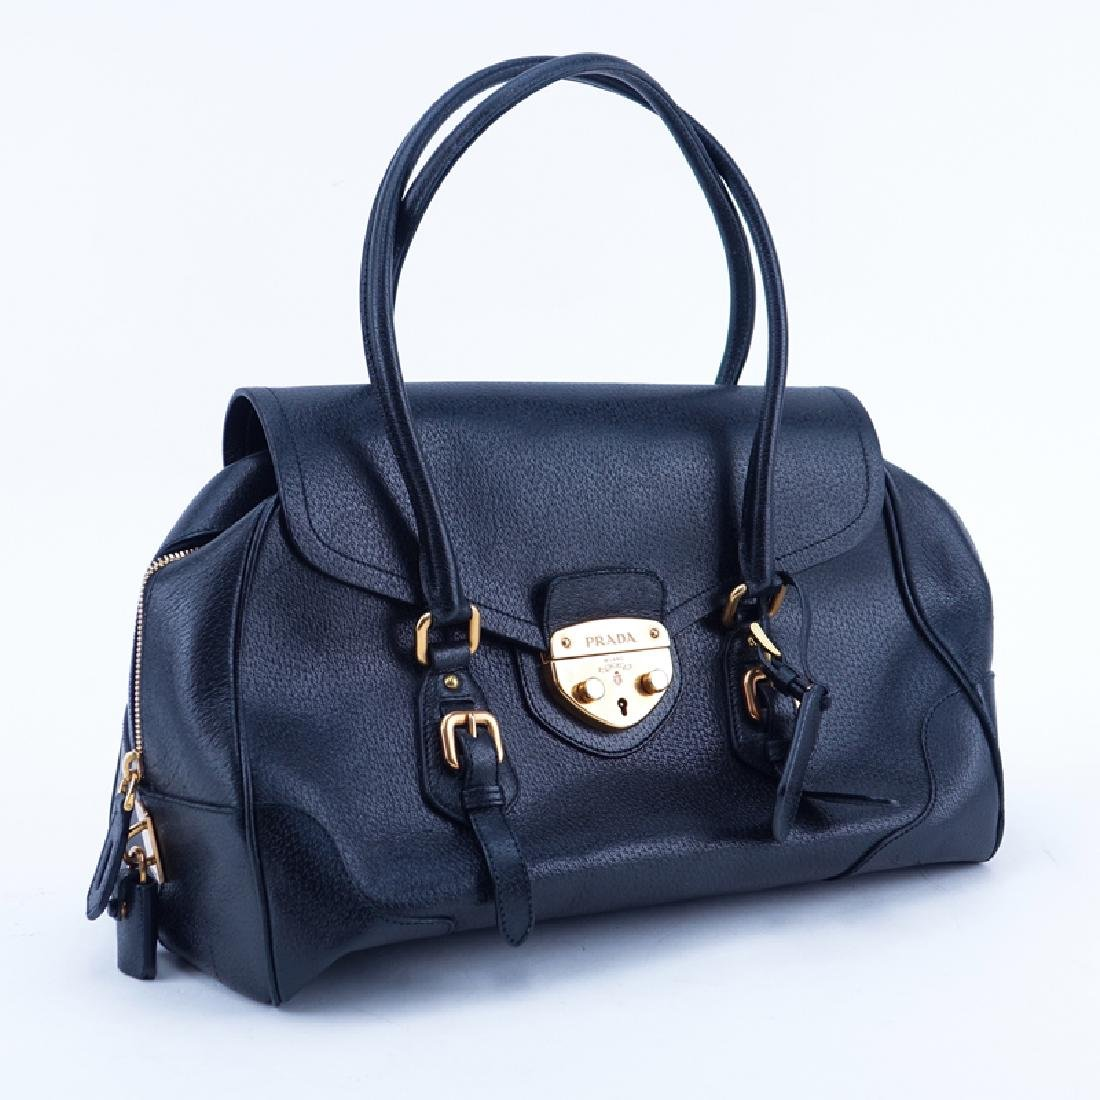 Prada Black Leather Handbag. Gold-tone hardware.